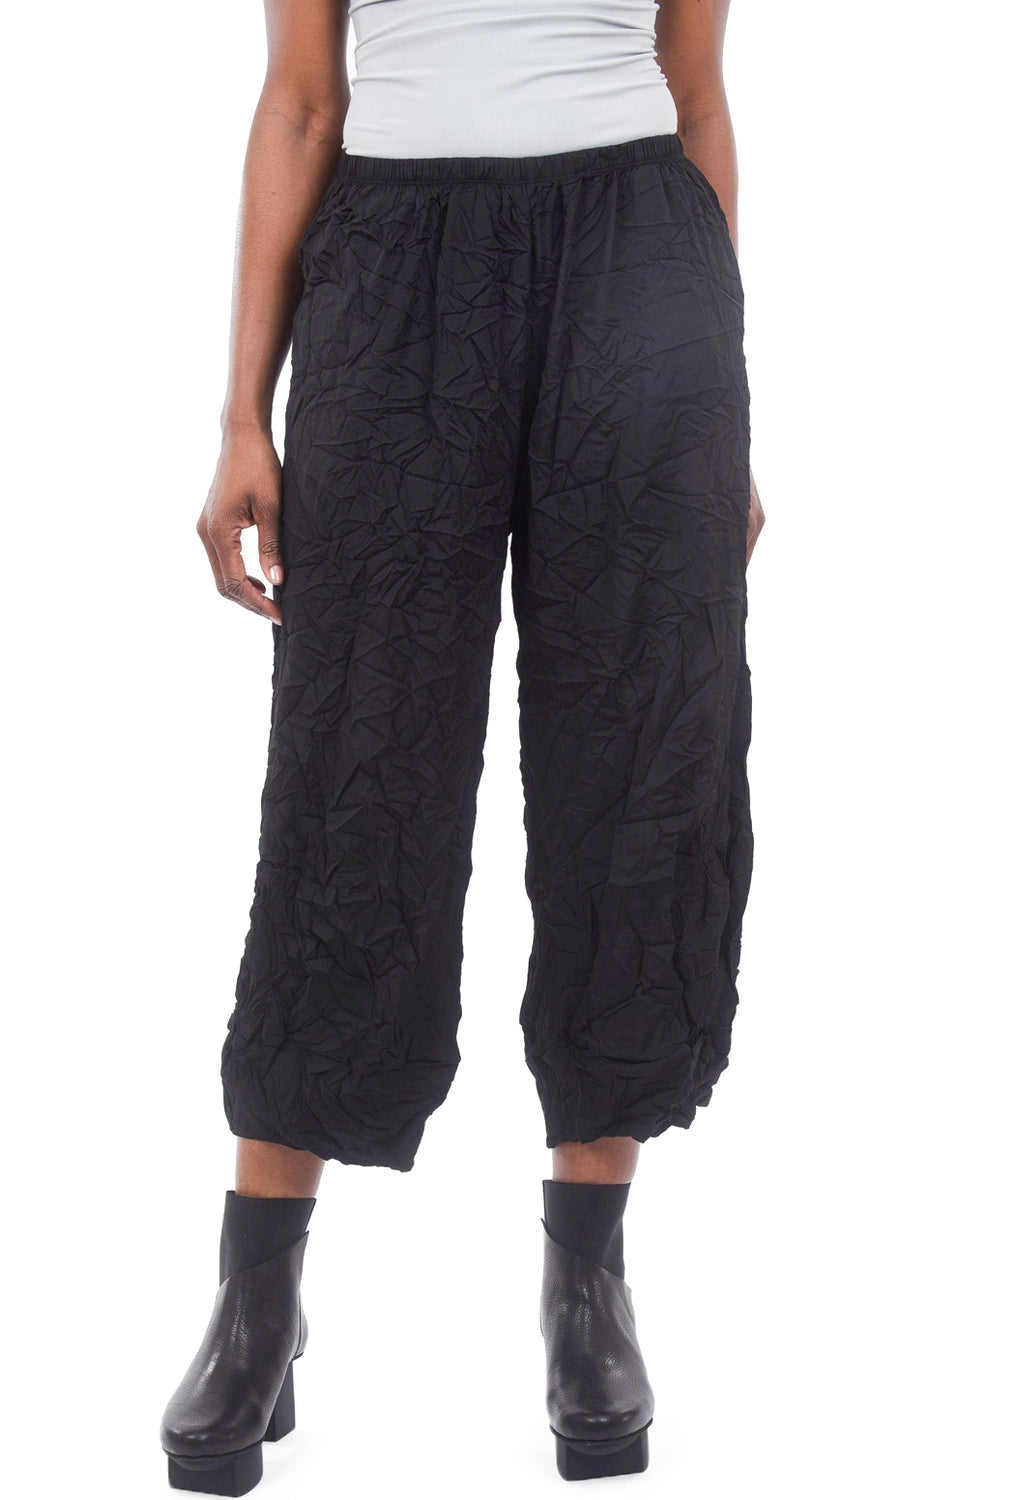 Comfy USA Crinkle Tina Pants, Black